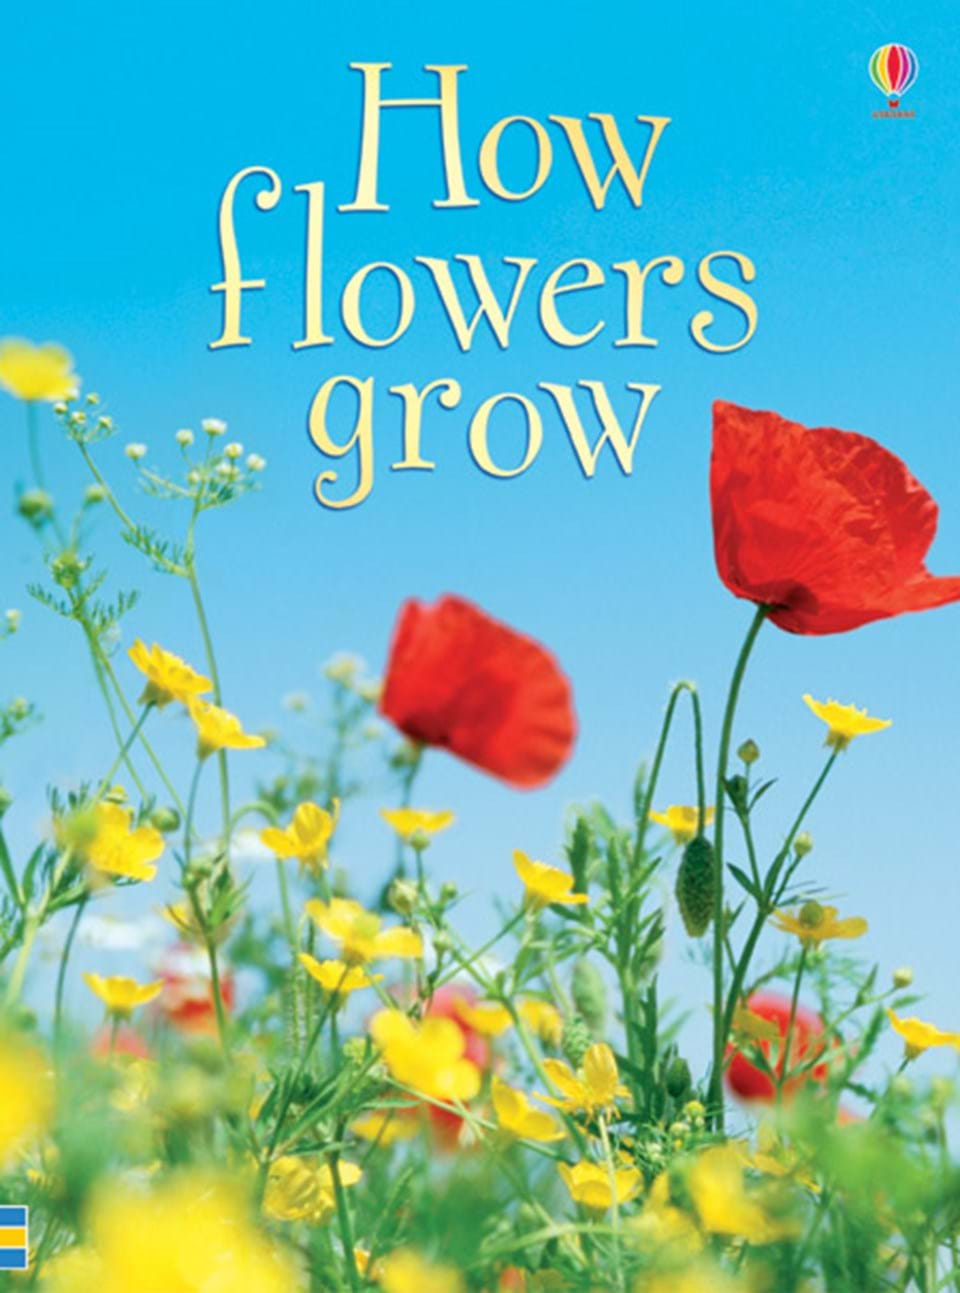 """how flowers grow"""" at usborne books at home, Natural flower"""